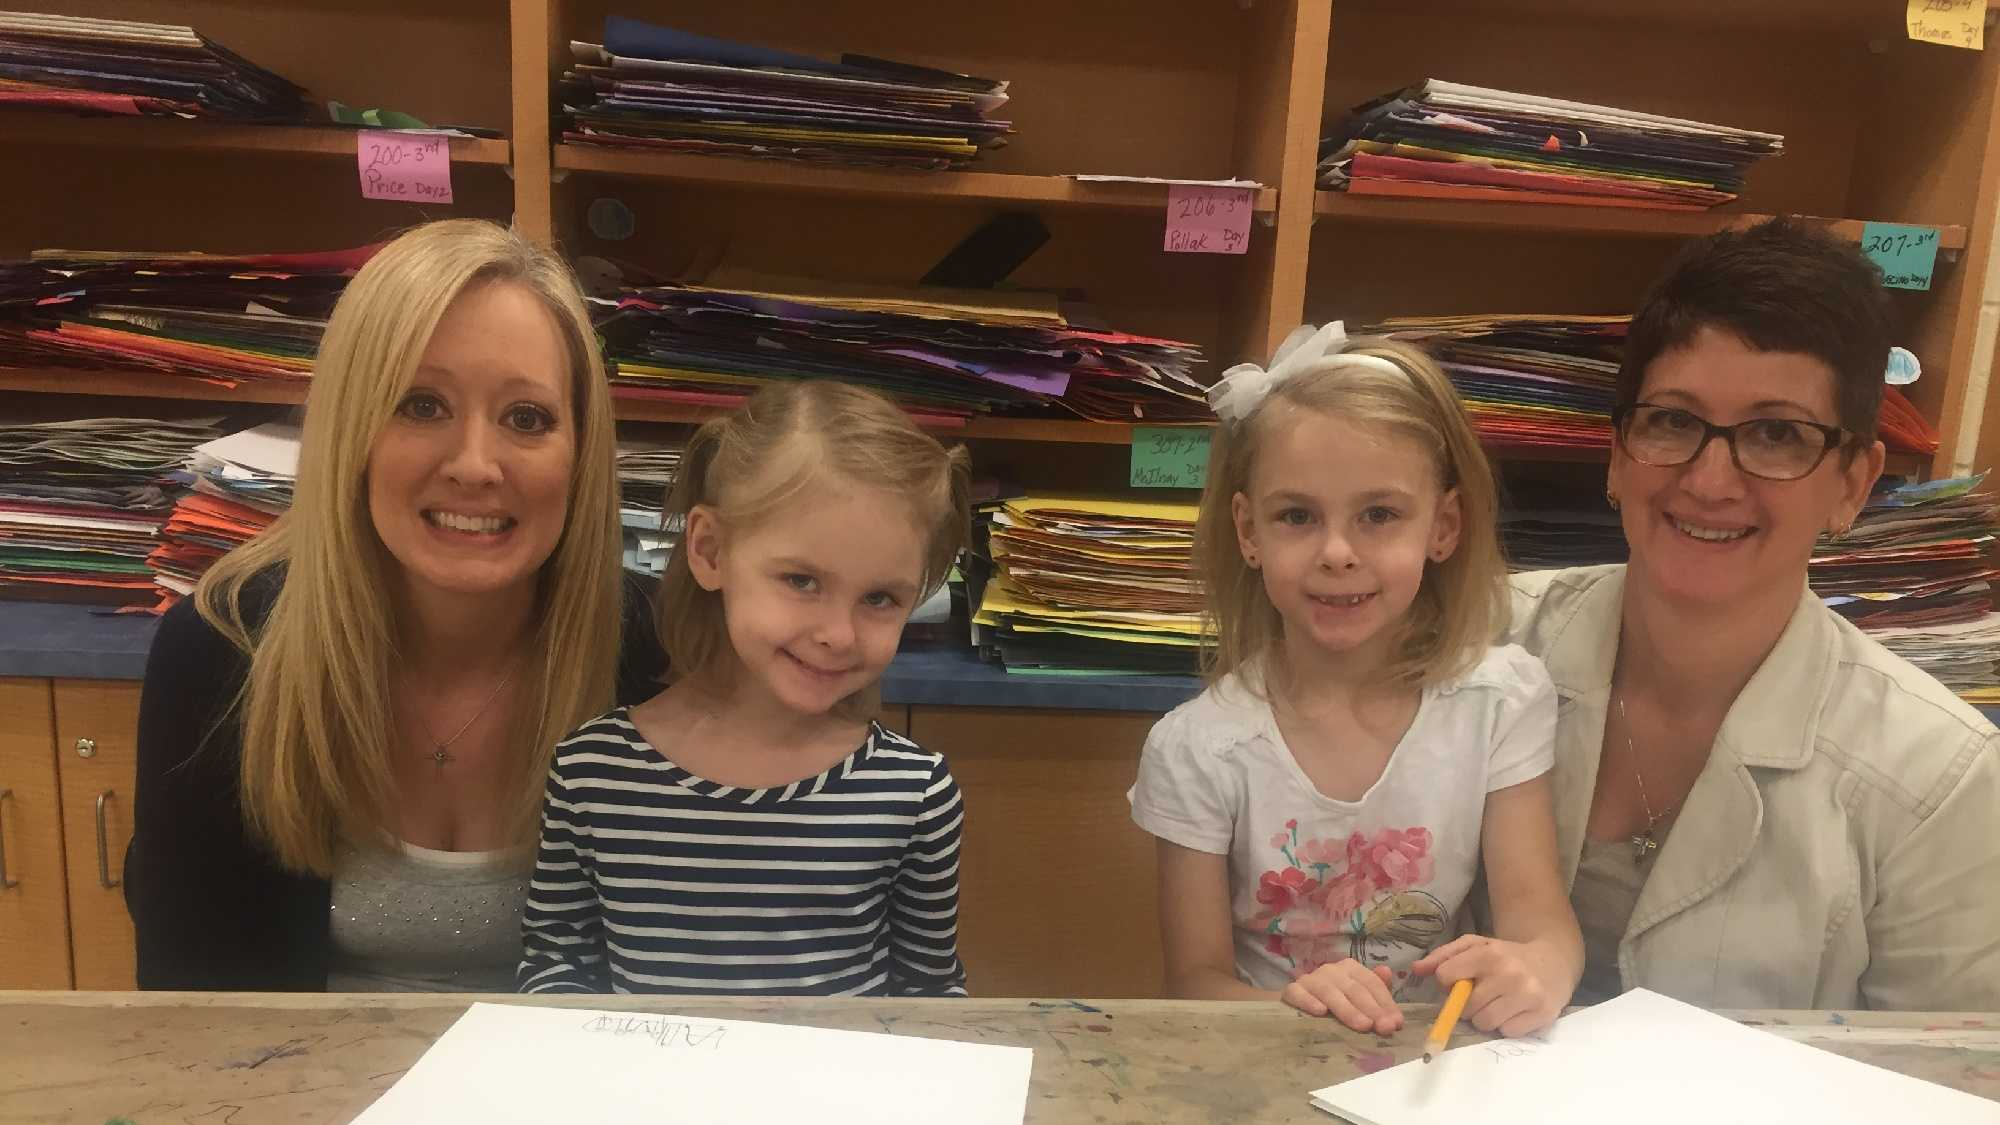 Alivia Johnson (left) and Riley Johnson (right), both 6, are pictured here with their teacher's aides at Stanwood Elementary School.